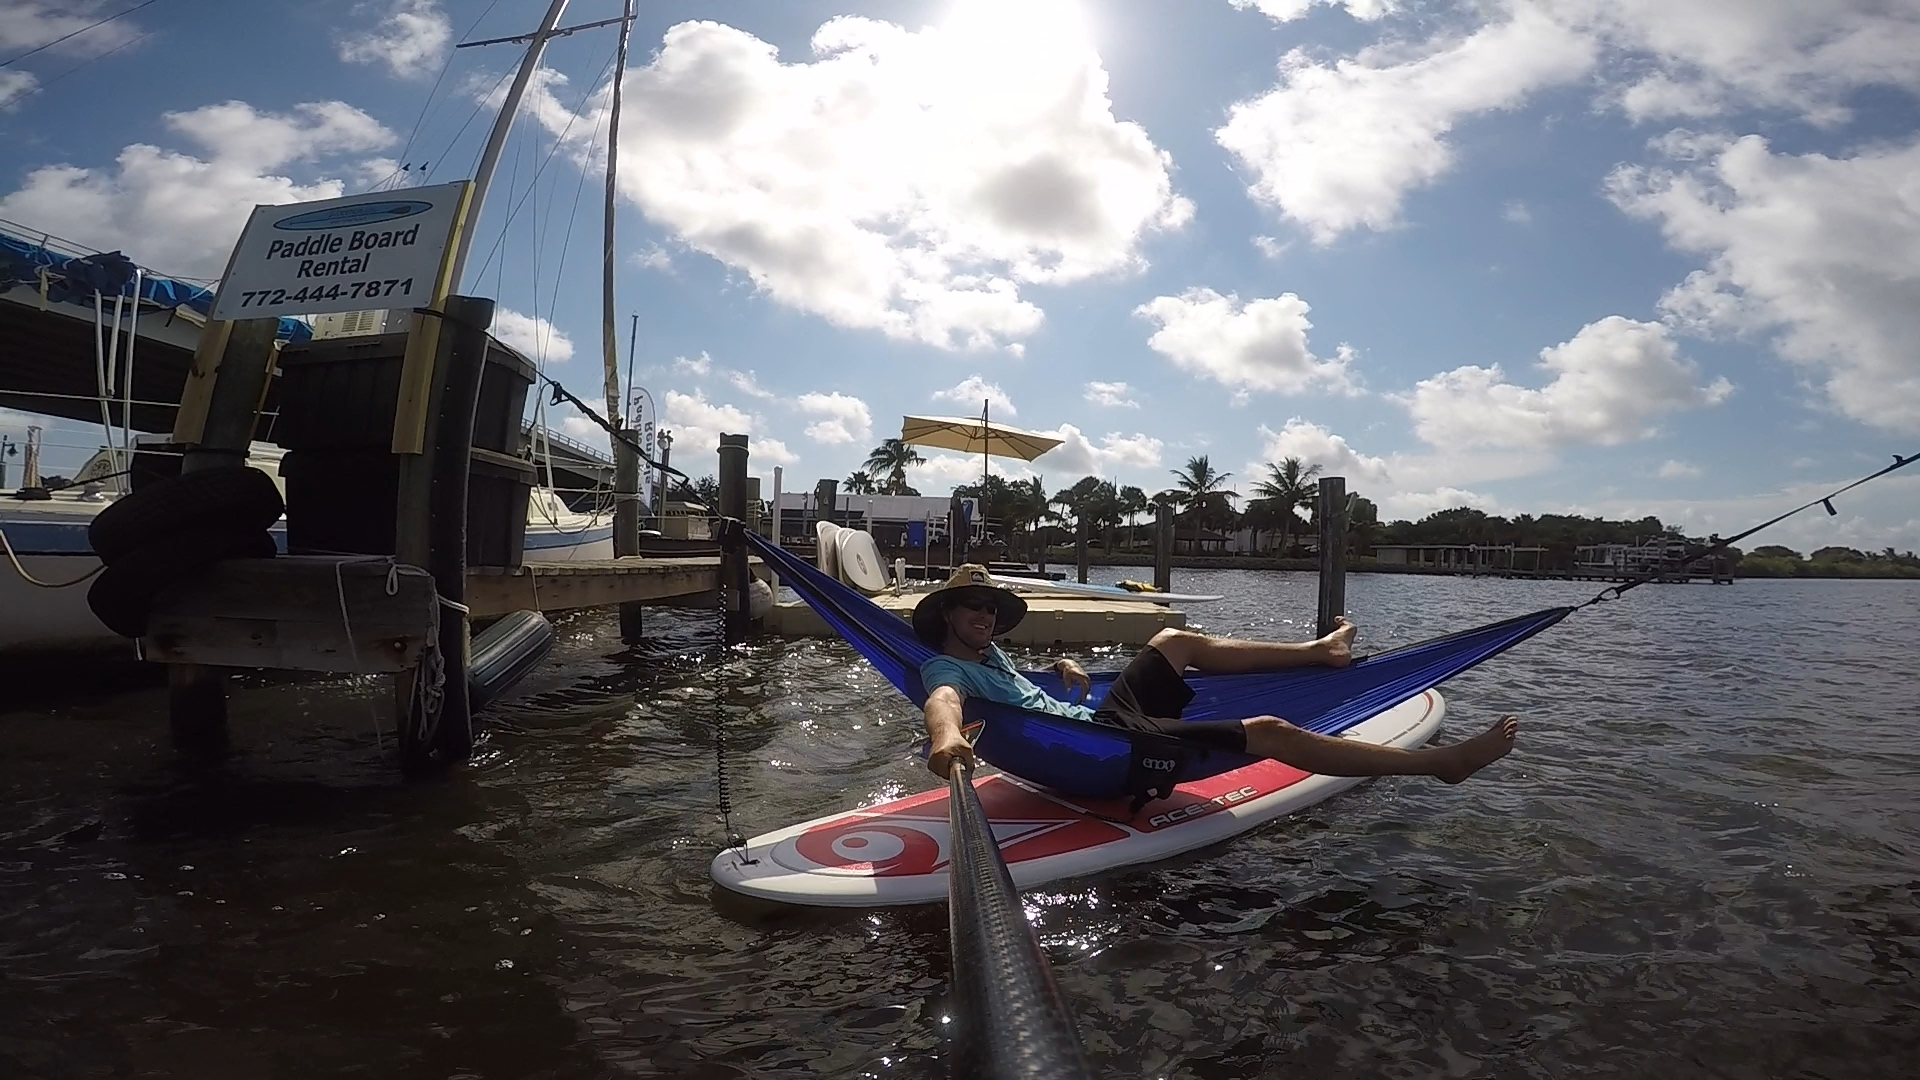 Paddle Board Sup And Kayak Als Lessons Tours In Vero Beach Florida By Certified Instructors Paddles The Sea